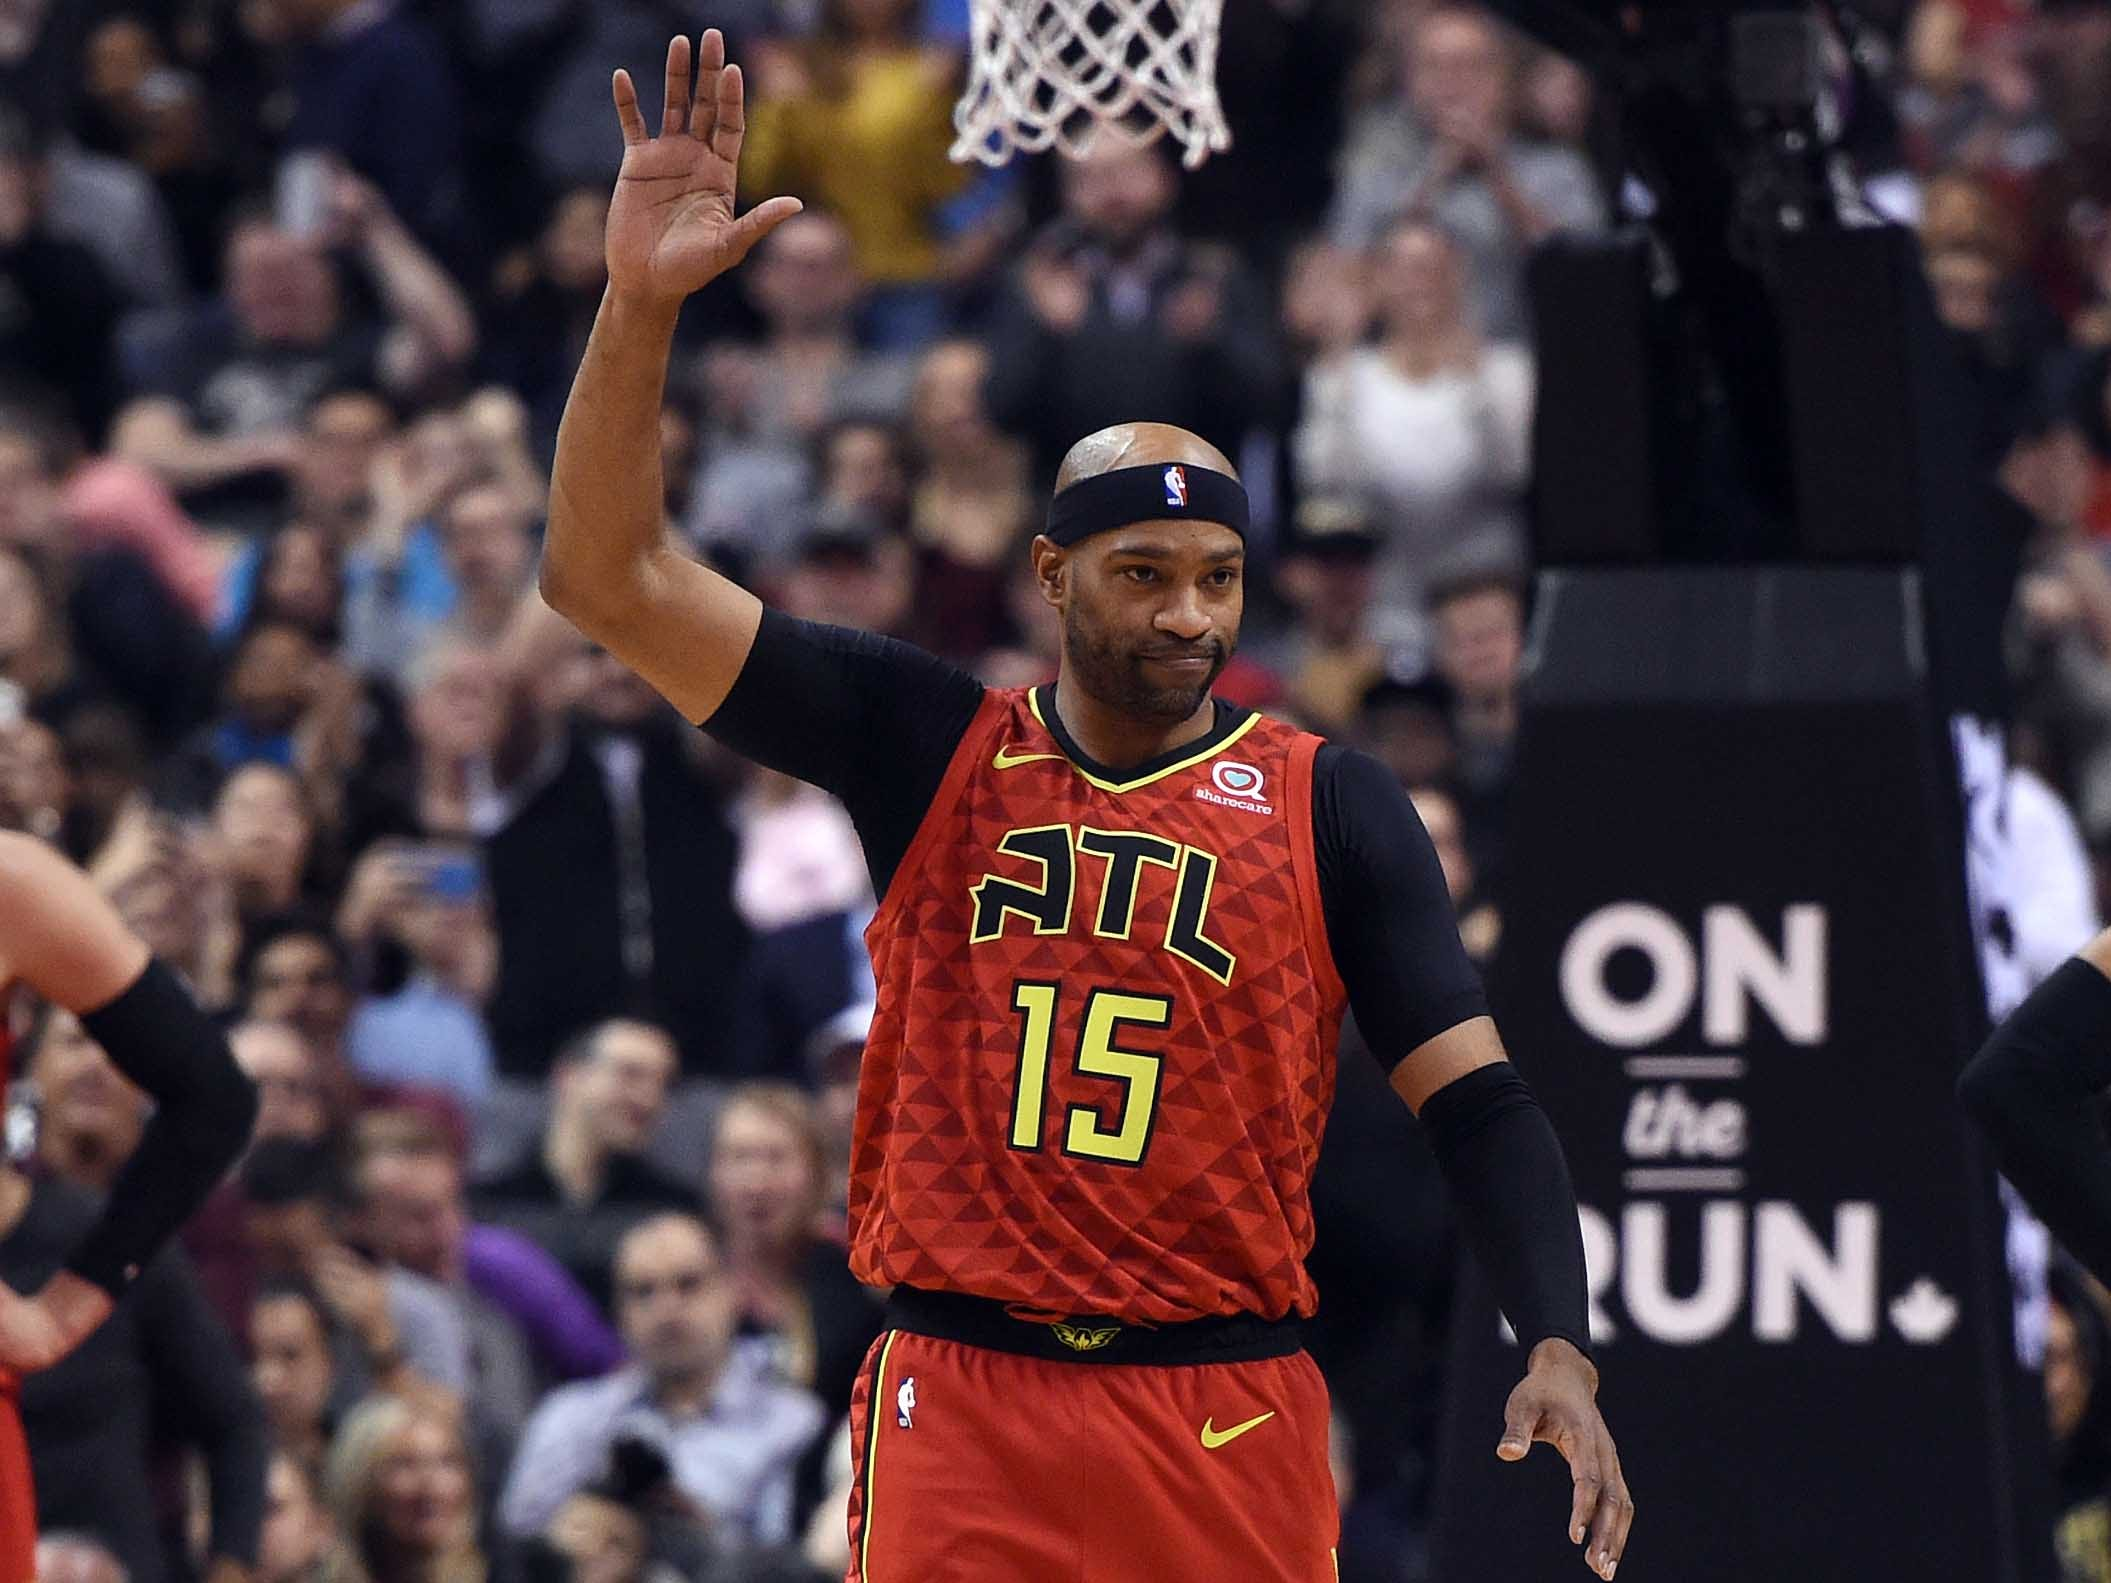 Jan. 8:  Current Hawks and former Raptors forward Vince Carter gets a stading ovation from the Toronto crowd as he enters the game at Scotiabank Arena.